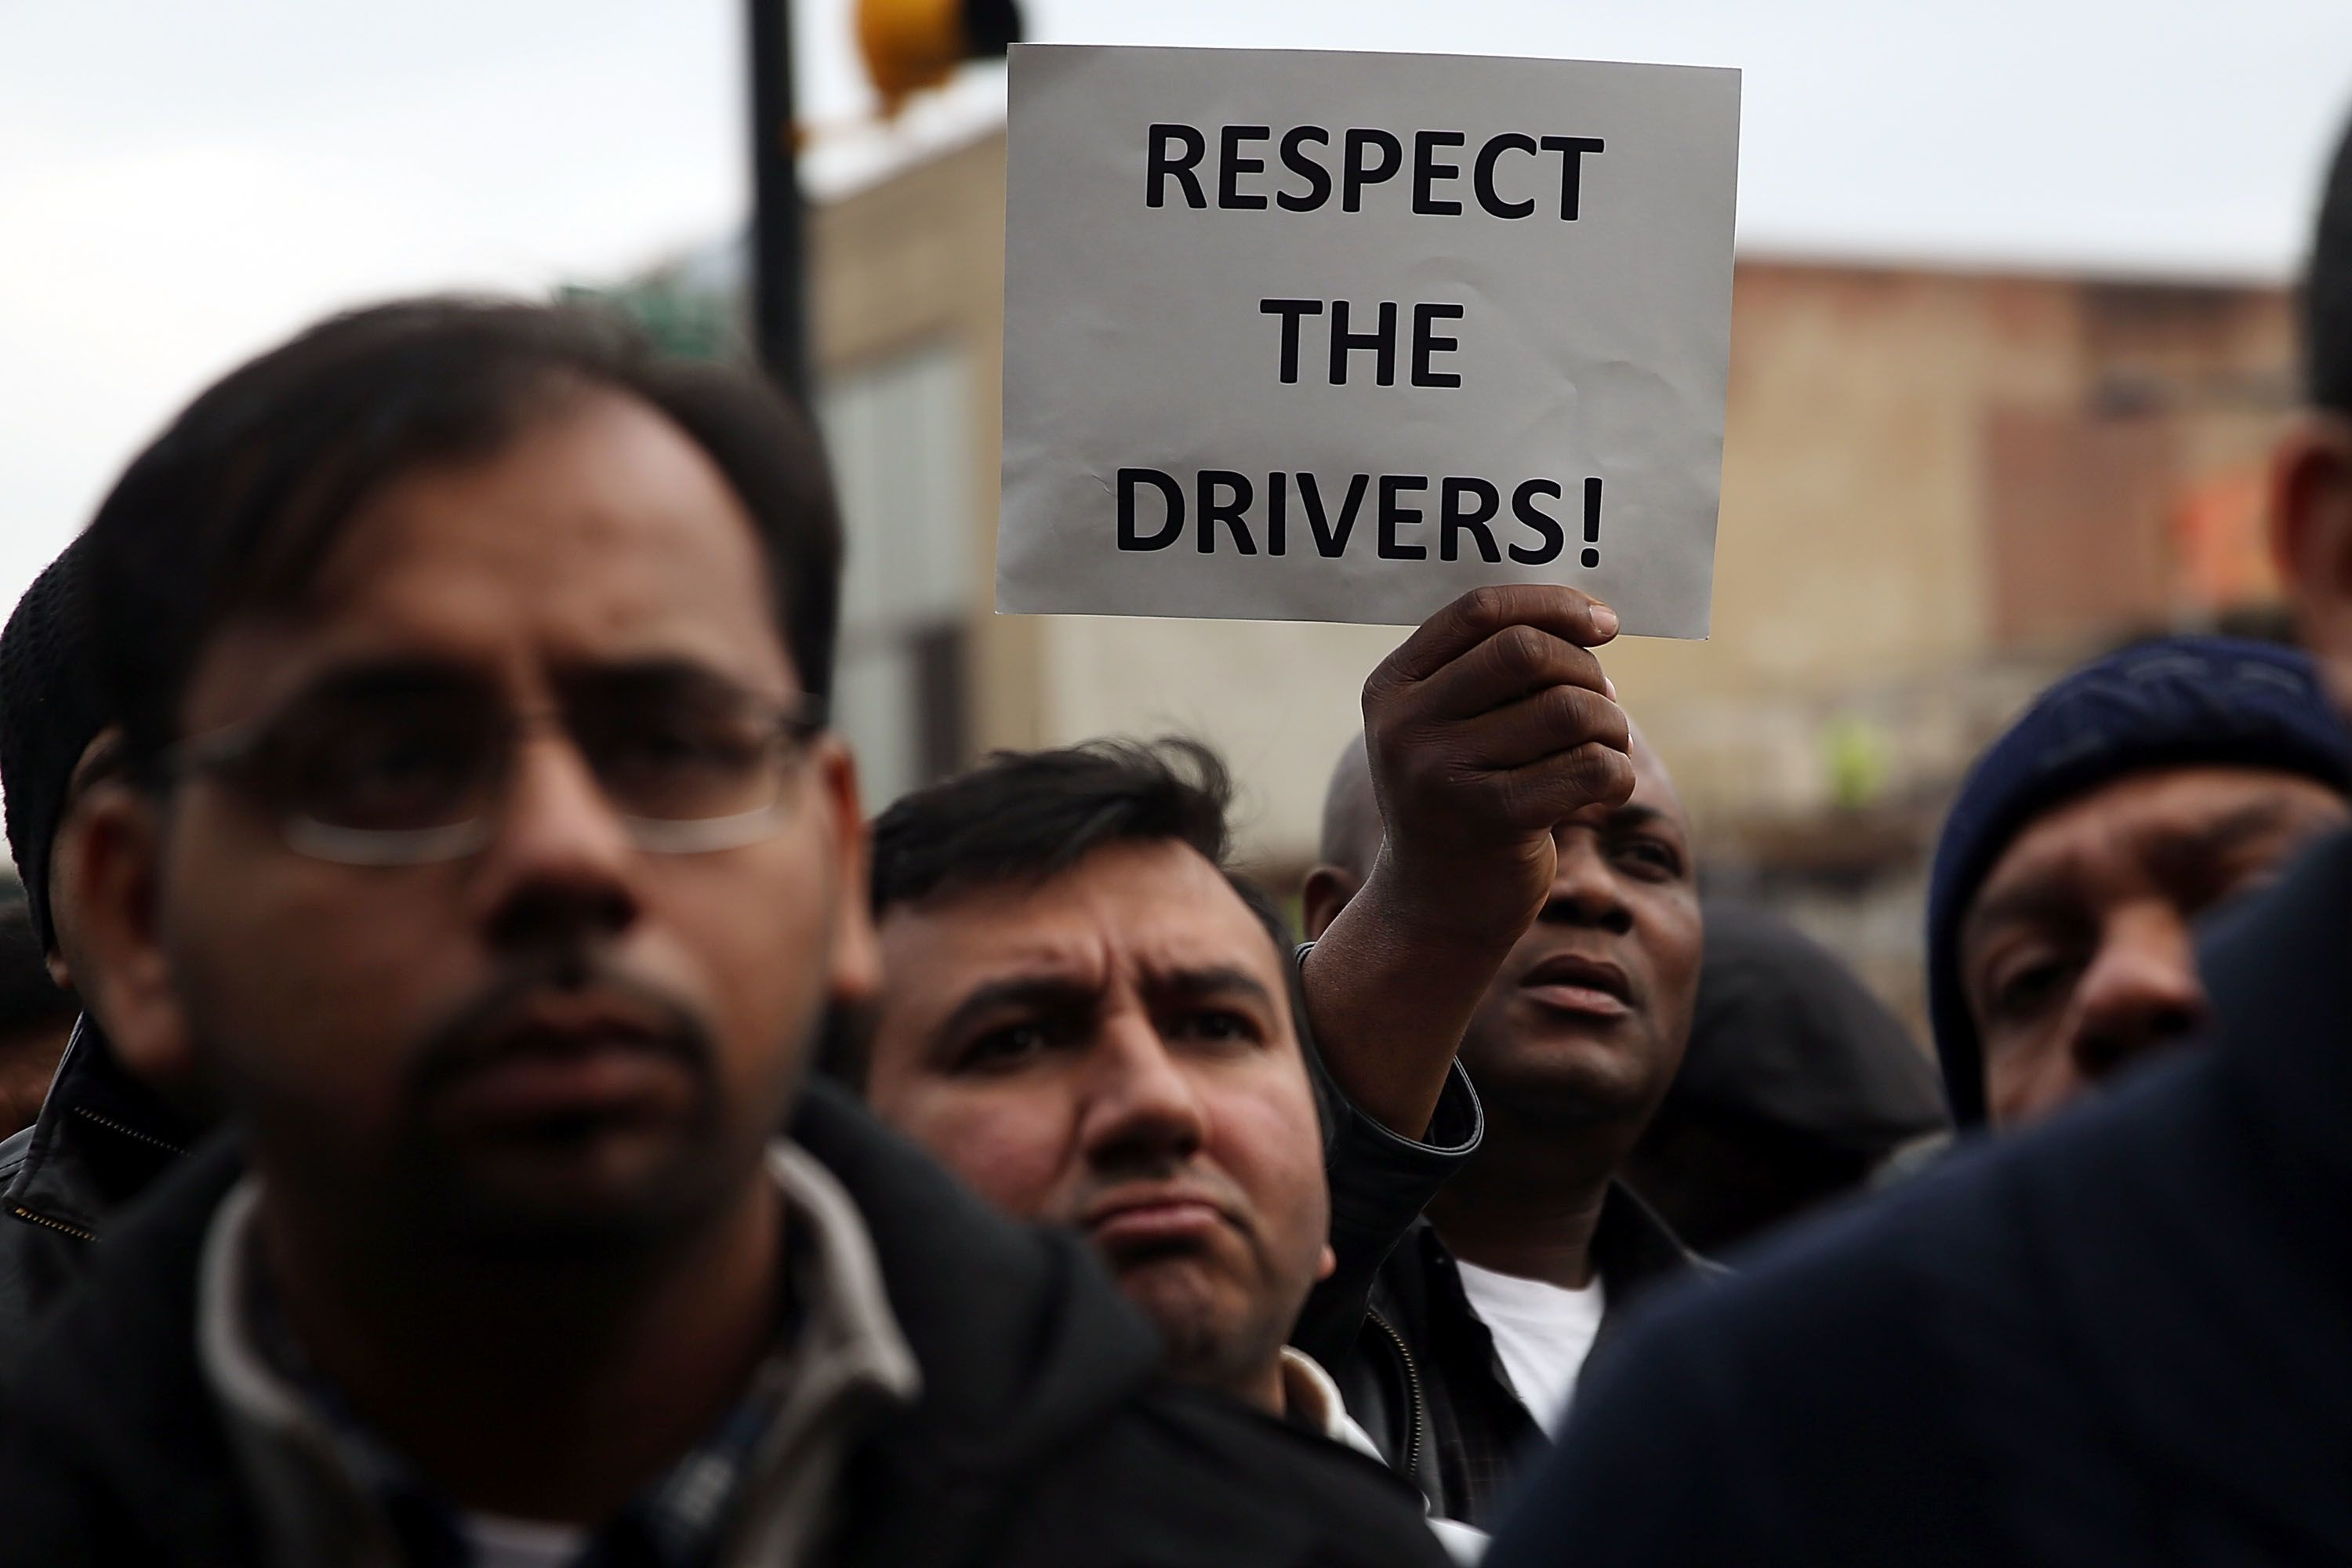 Uber, Lyft drivers to go on strike over low wages and benefits